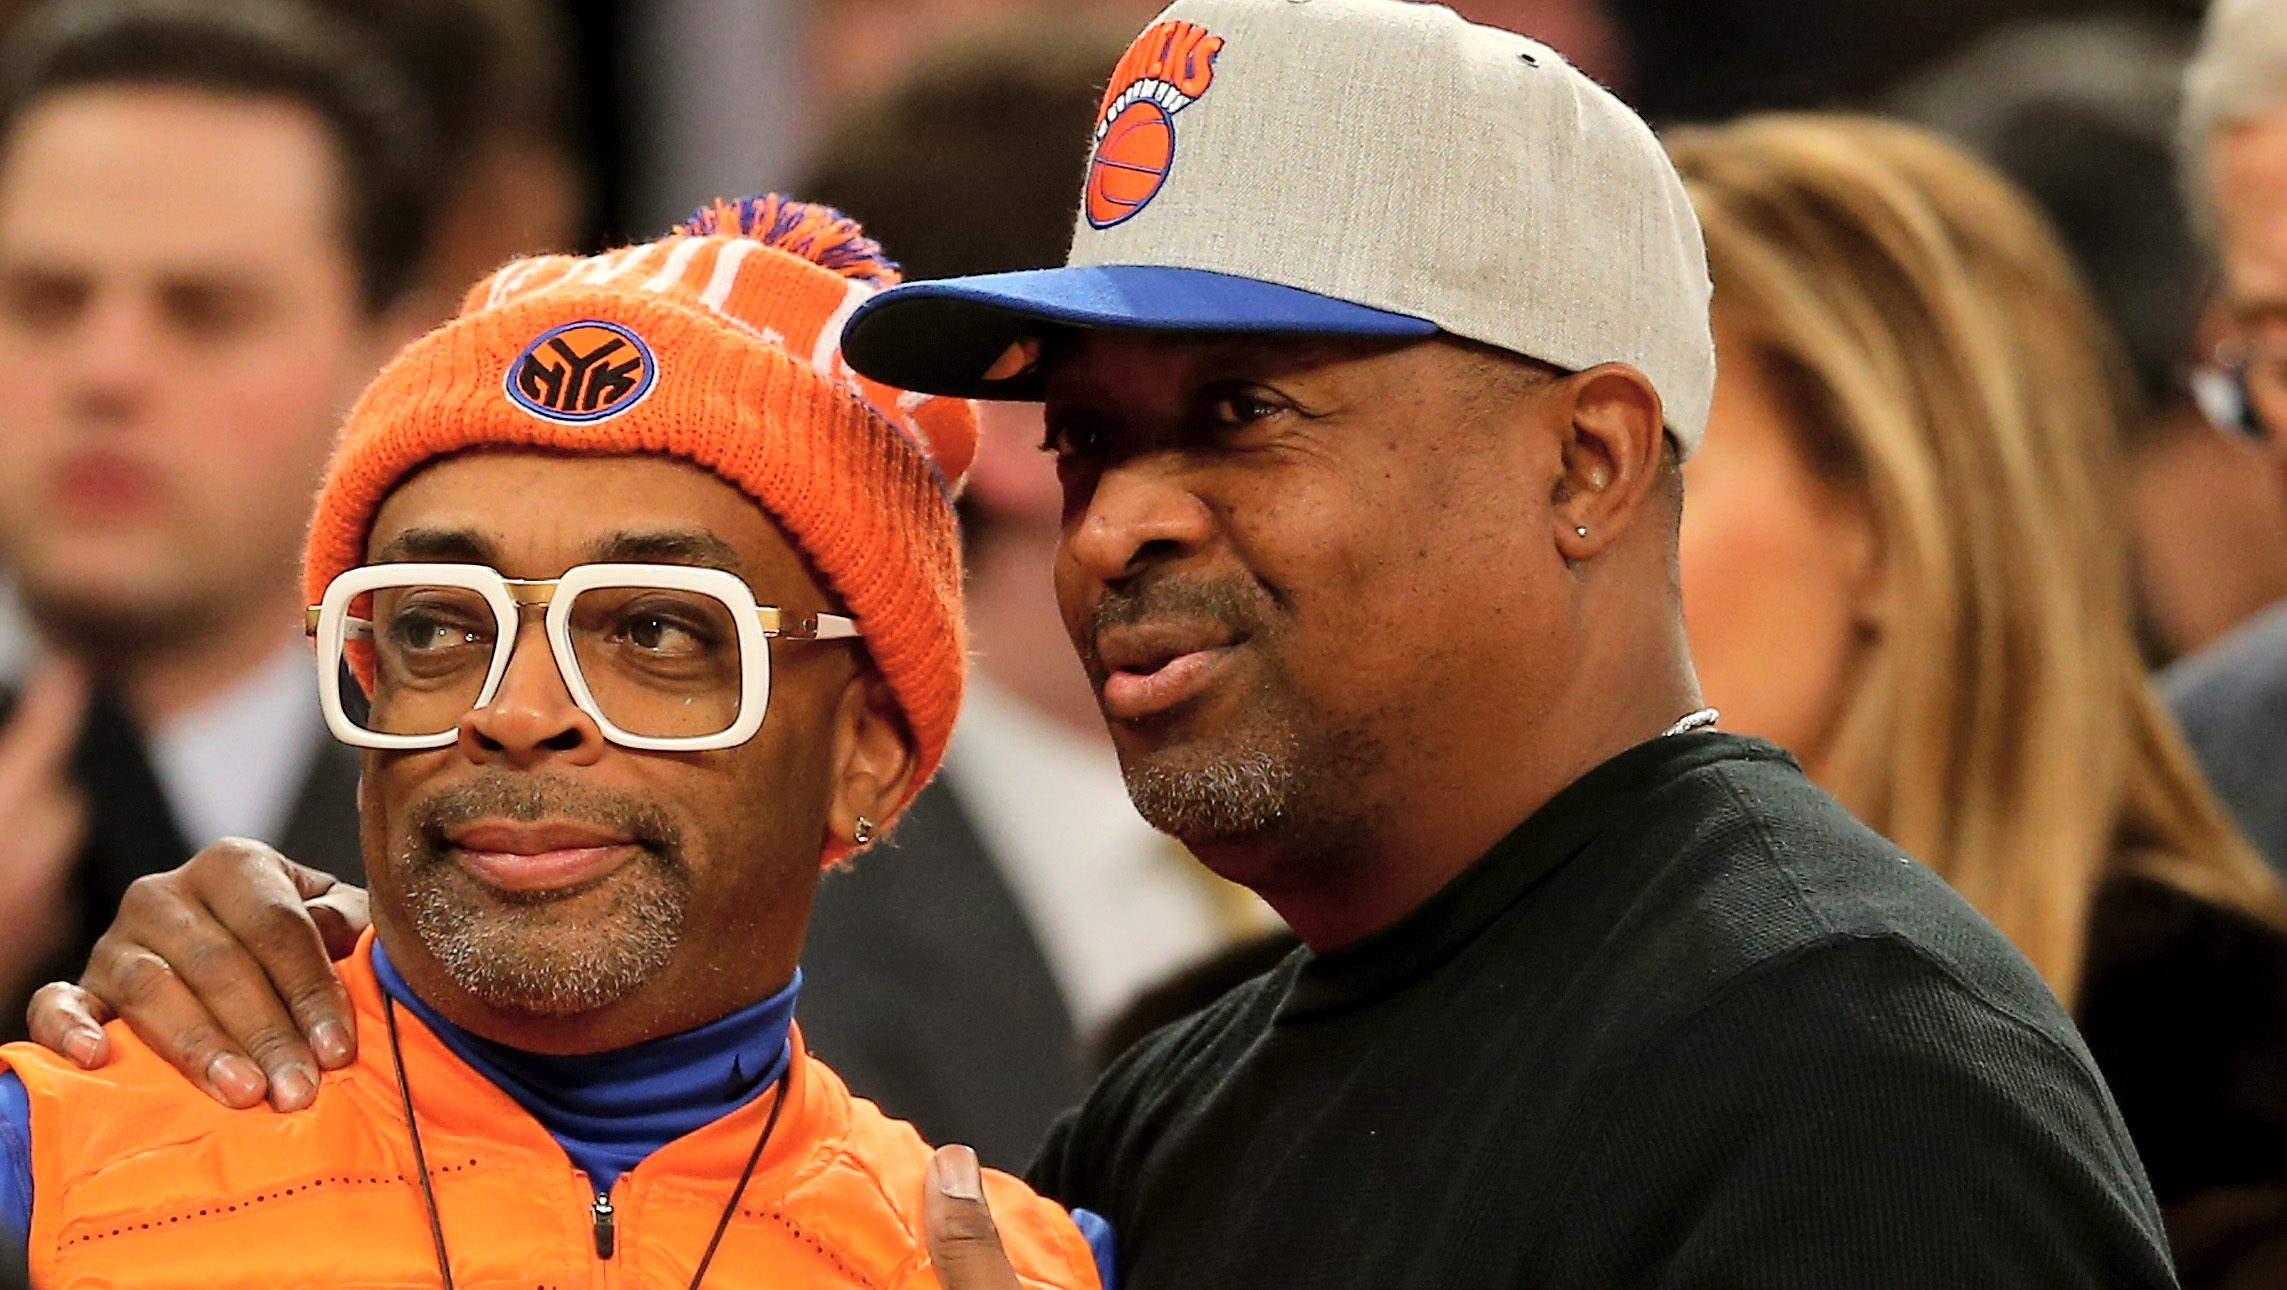 Chuck D S Bond With The New York Knicks The Undefeated